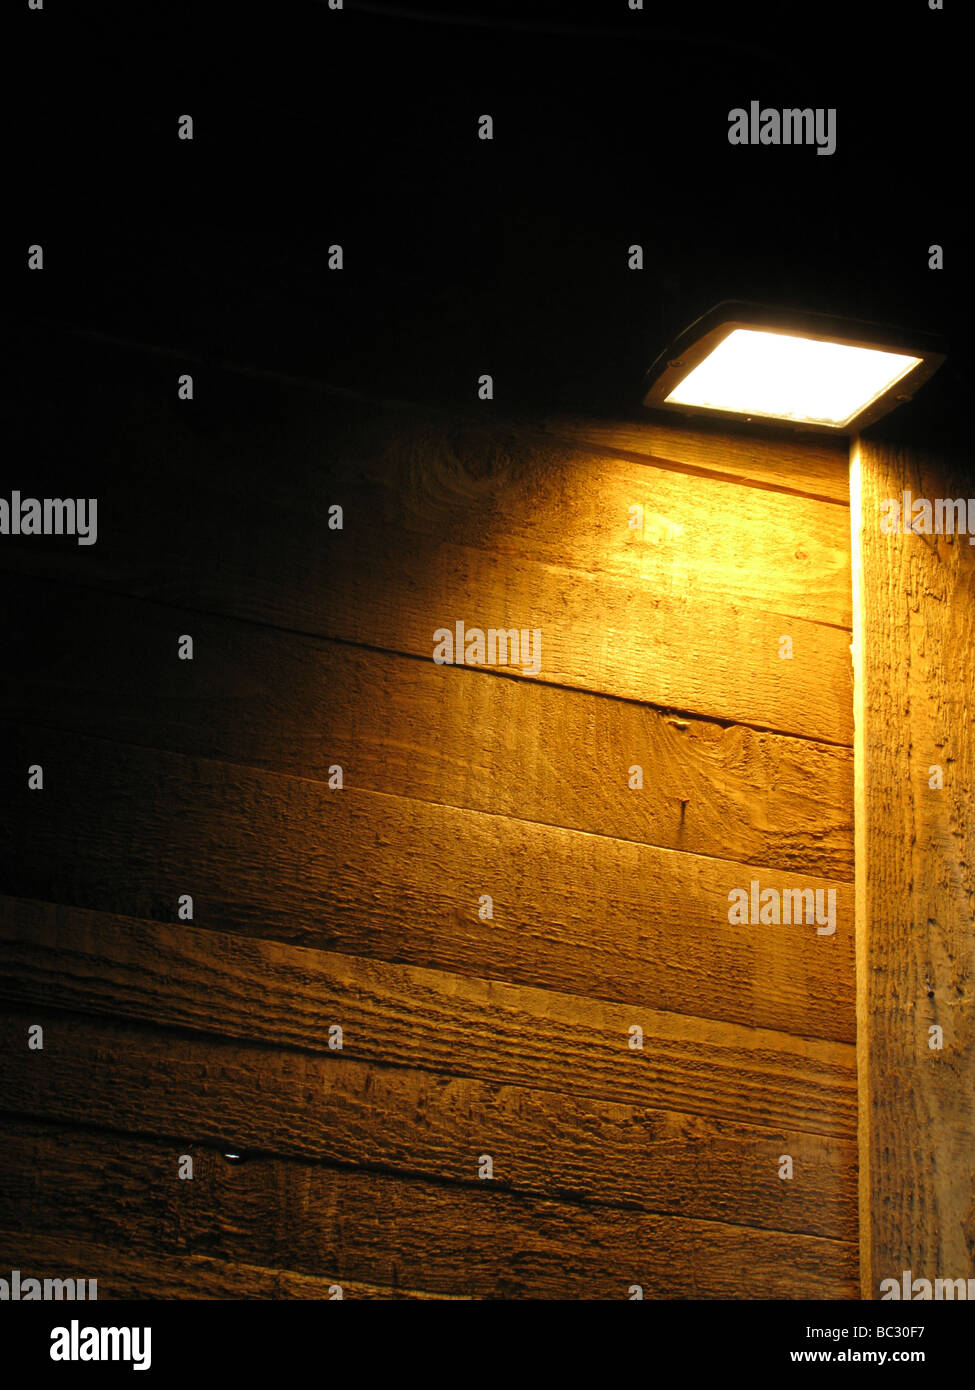 one bright spot light and high wooden wall at night & one bright spot light and high wooden wall at night Stock Photo ...